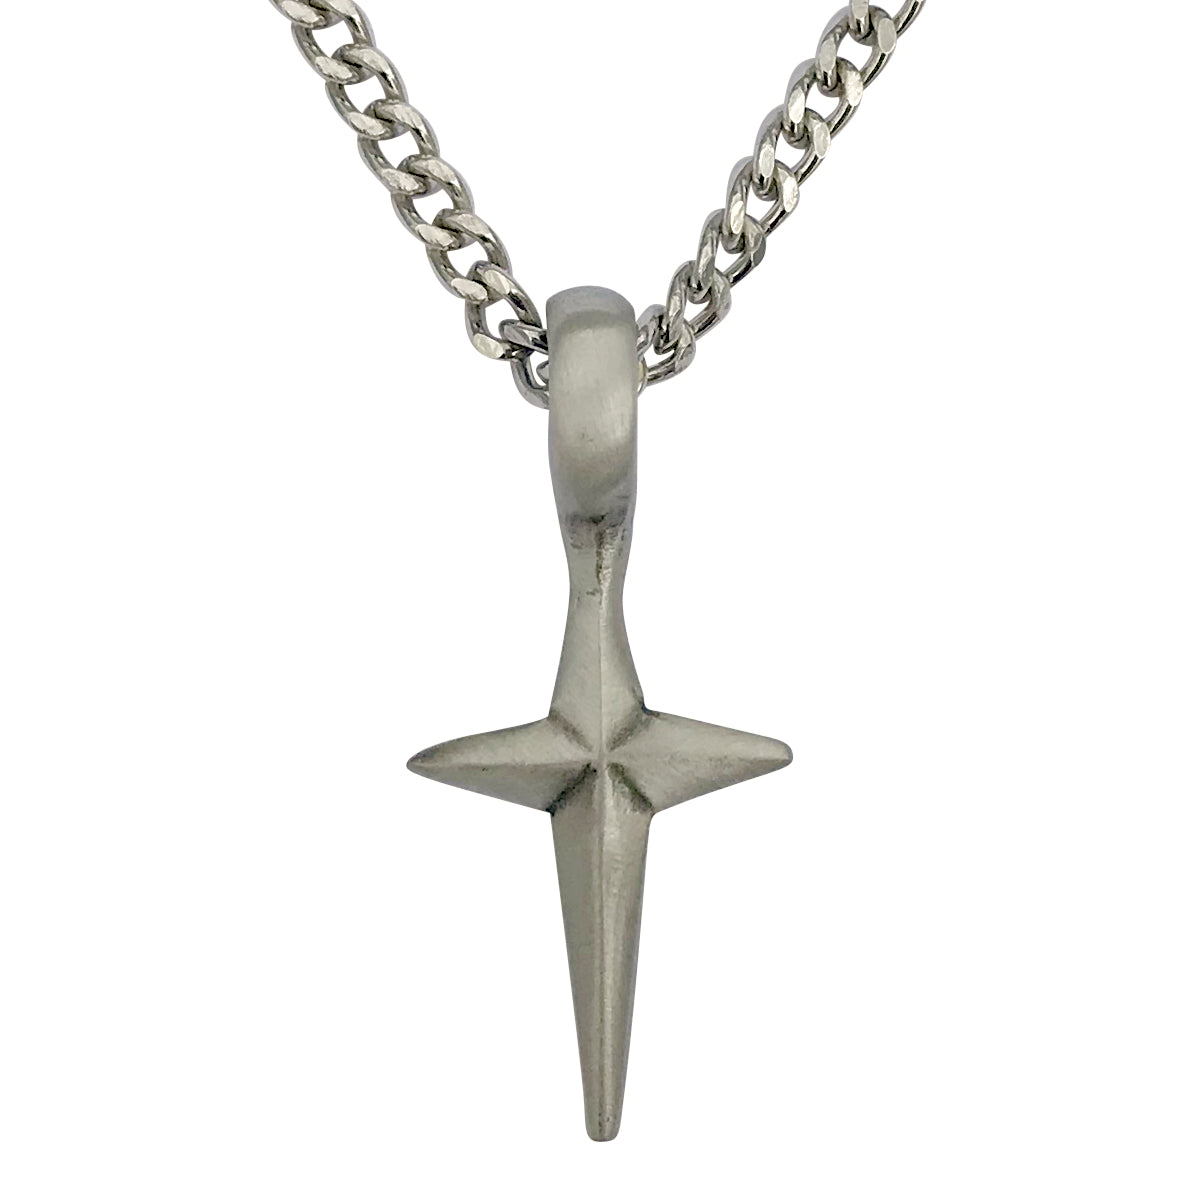 dd4d2feb4e00e Pewter Spike Cross Pendant with Extra Large Bail, on Men's Heavy Curb Chain  Necklace, 24